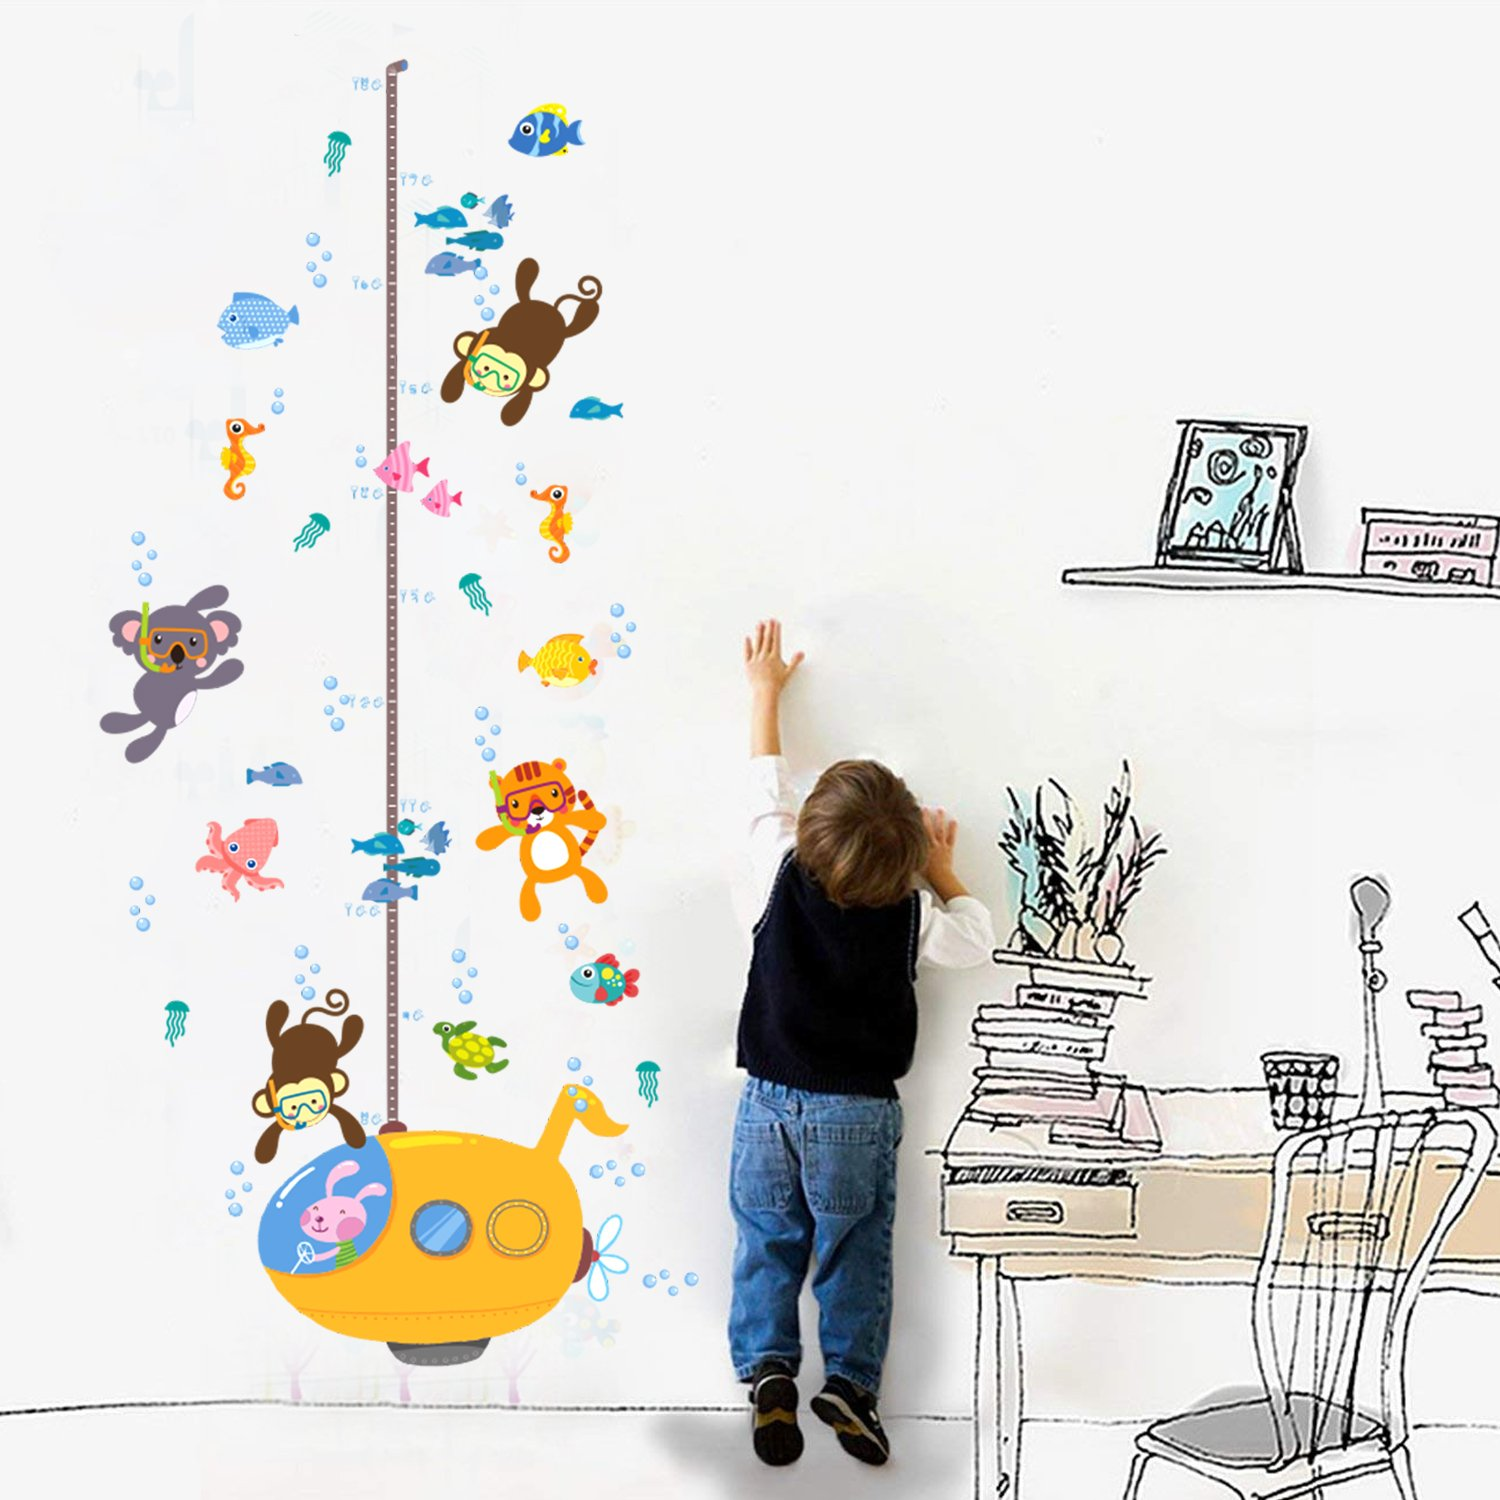 Kids Room Height Ruler Wall Decals DIY Cartoon Animal Swimming Growth Chart Removable Measurement Rulers Nursery Home Decor for Girls /& Boys Measures Up to 5.9 Feet HUABEI